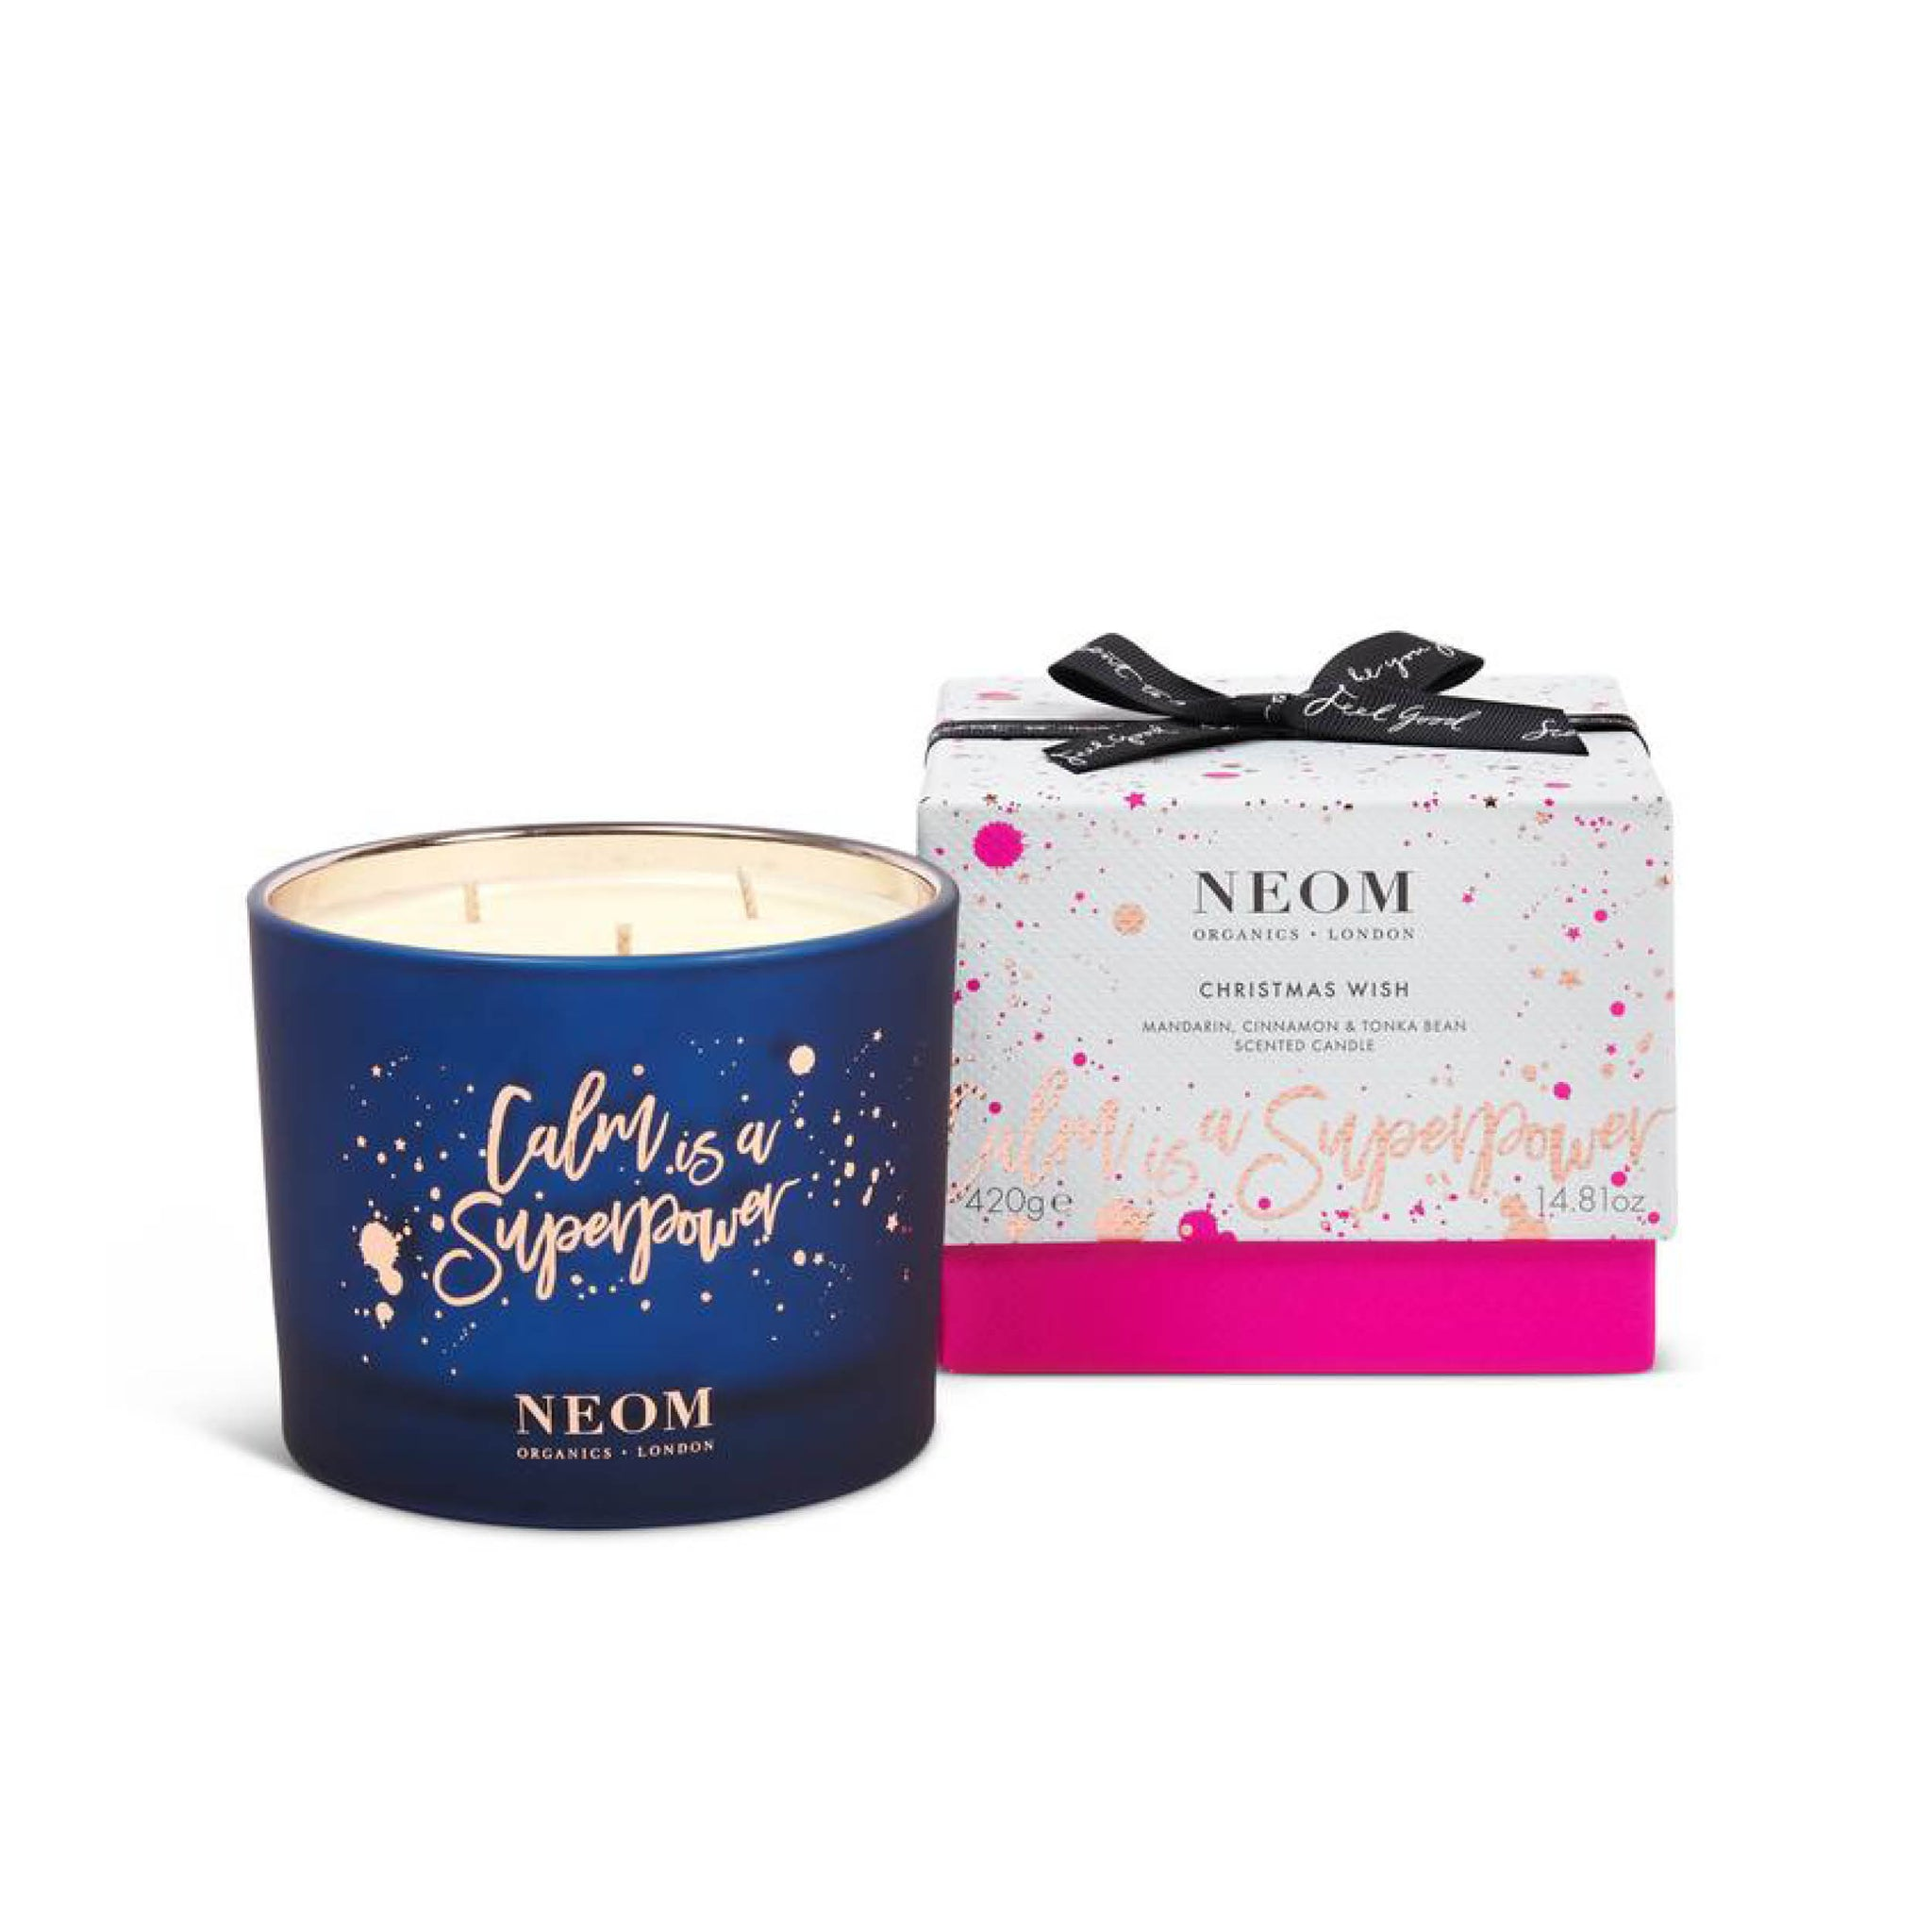 Neom Christmas Wish 3 Wick Candle